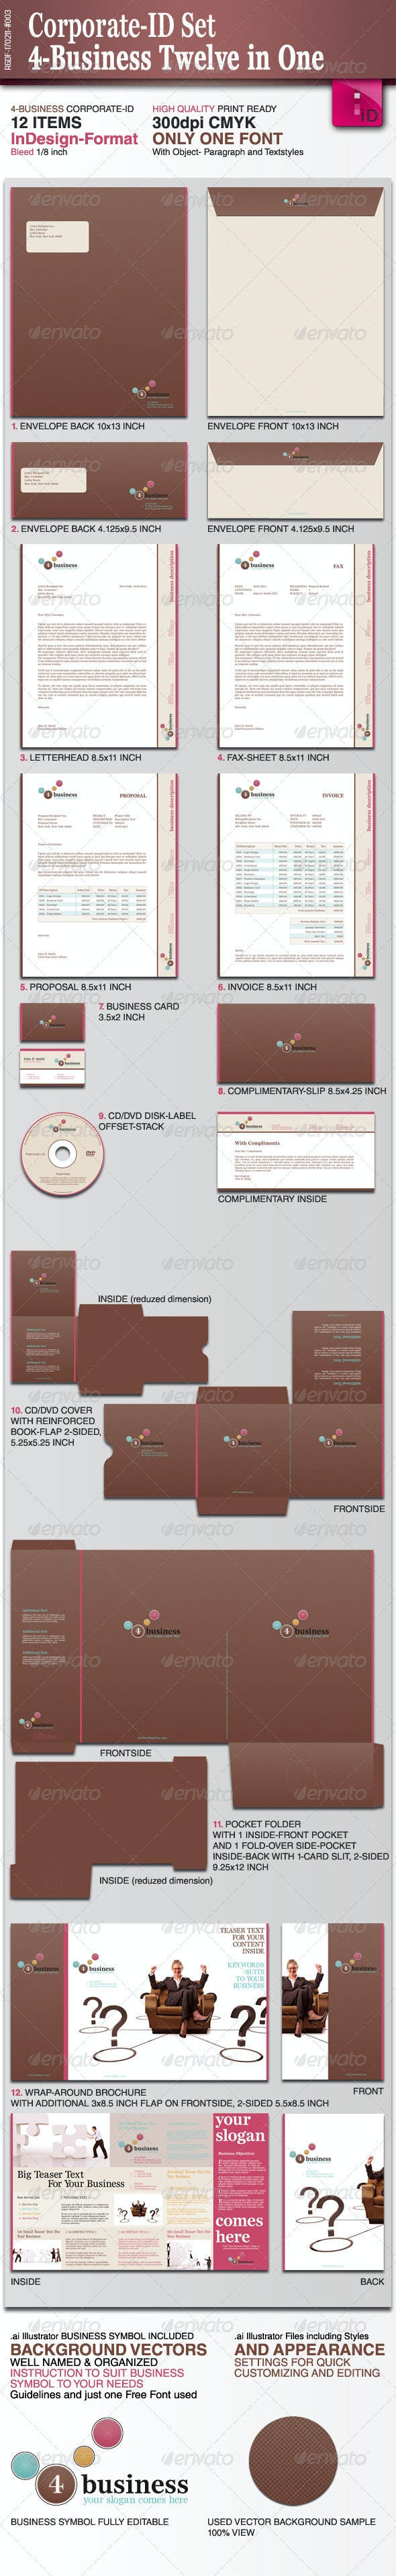 Corporate-ID Set 4-Business Twelve in One - Stationery Print Templates